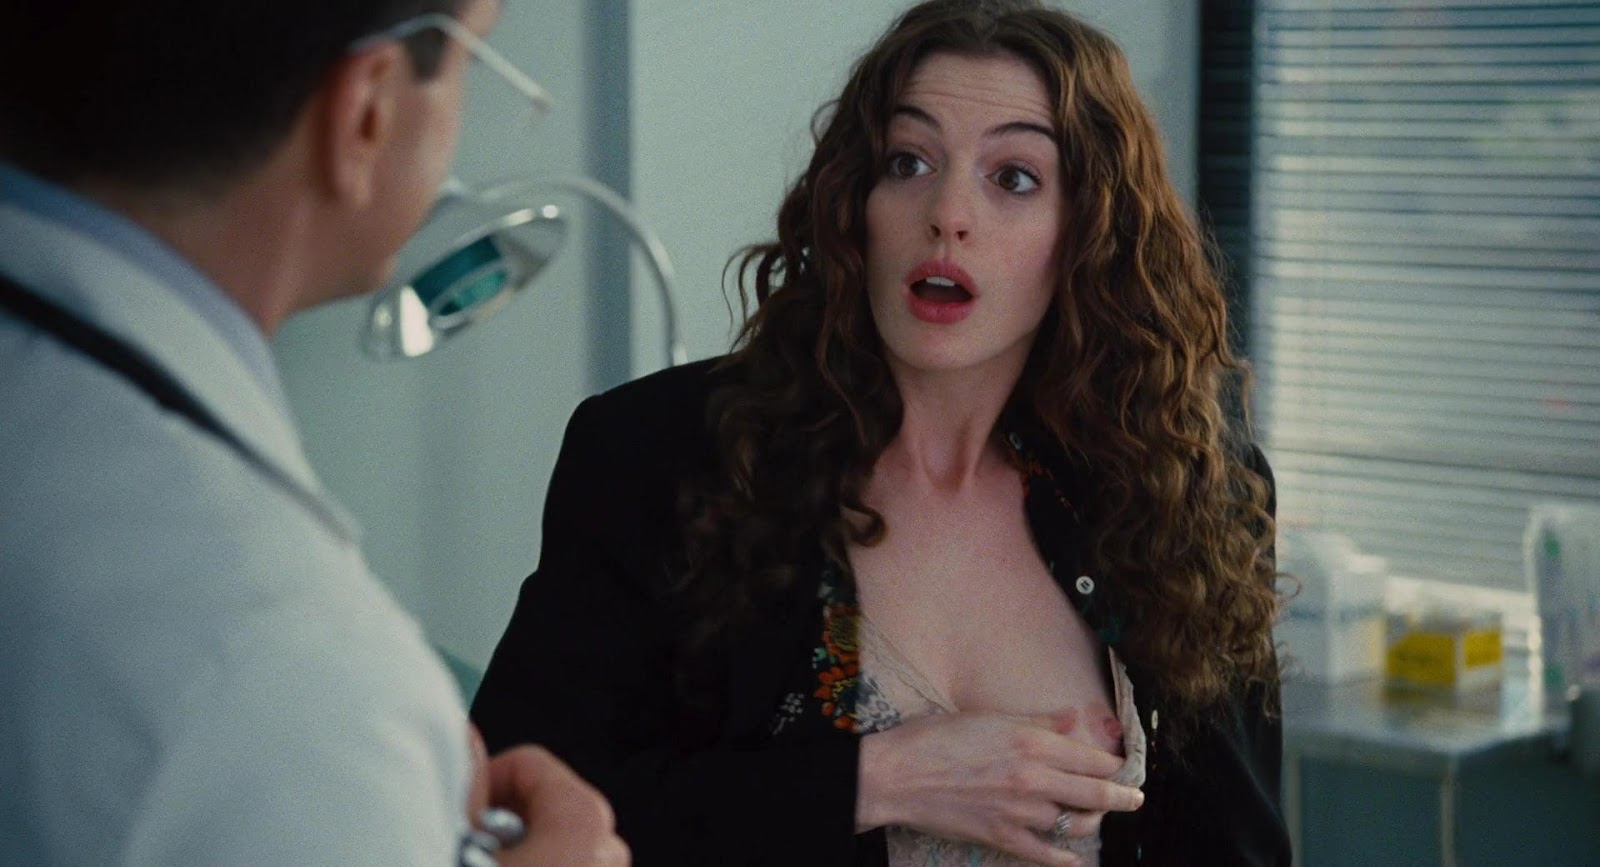 http://4.bp.blogspot.com/-TmUerDPpWfI/UDSQuqVmULI/AAAAAAAACIA/yvKtdM2trms/s1600/Anne+Hathaway+-+Love+and+Other+Drugs++1080p03.jpg